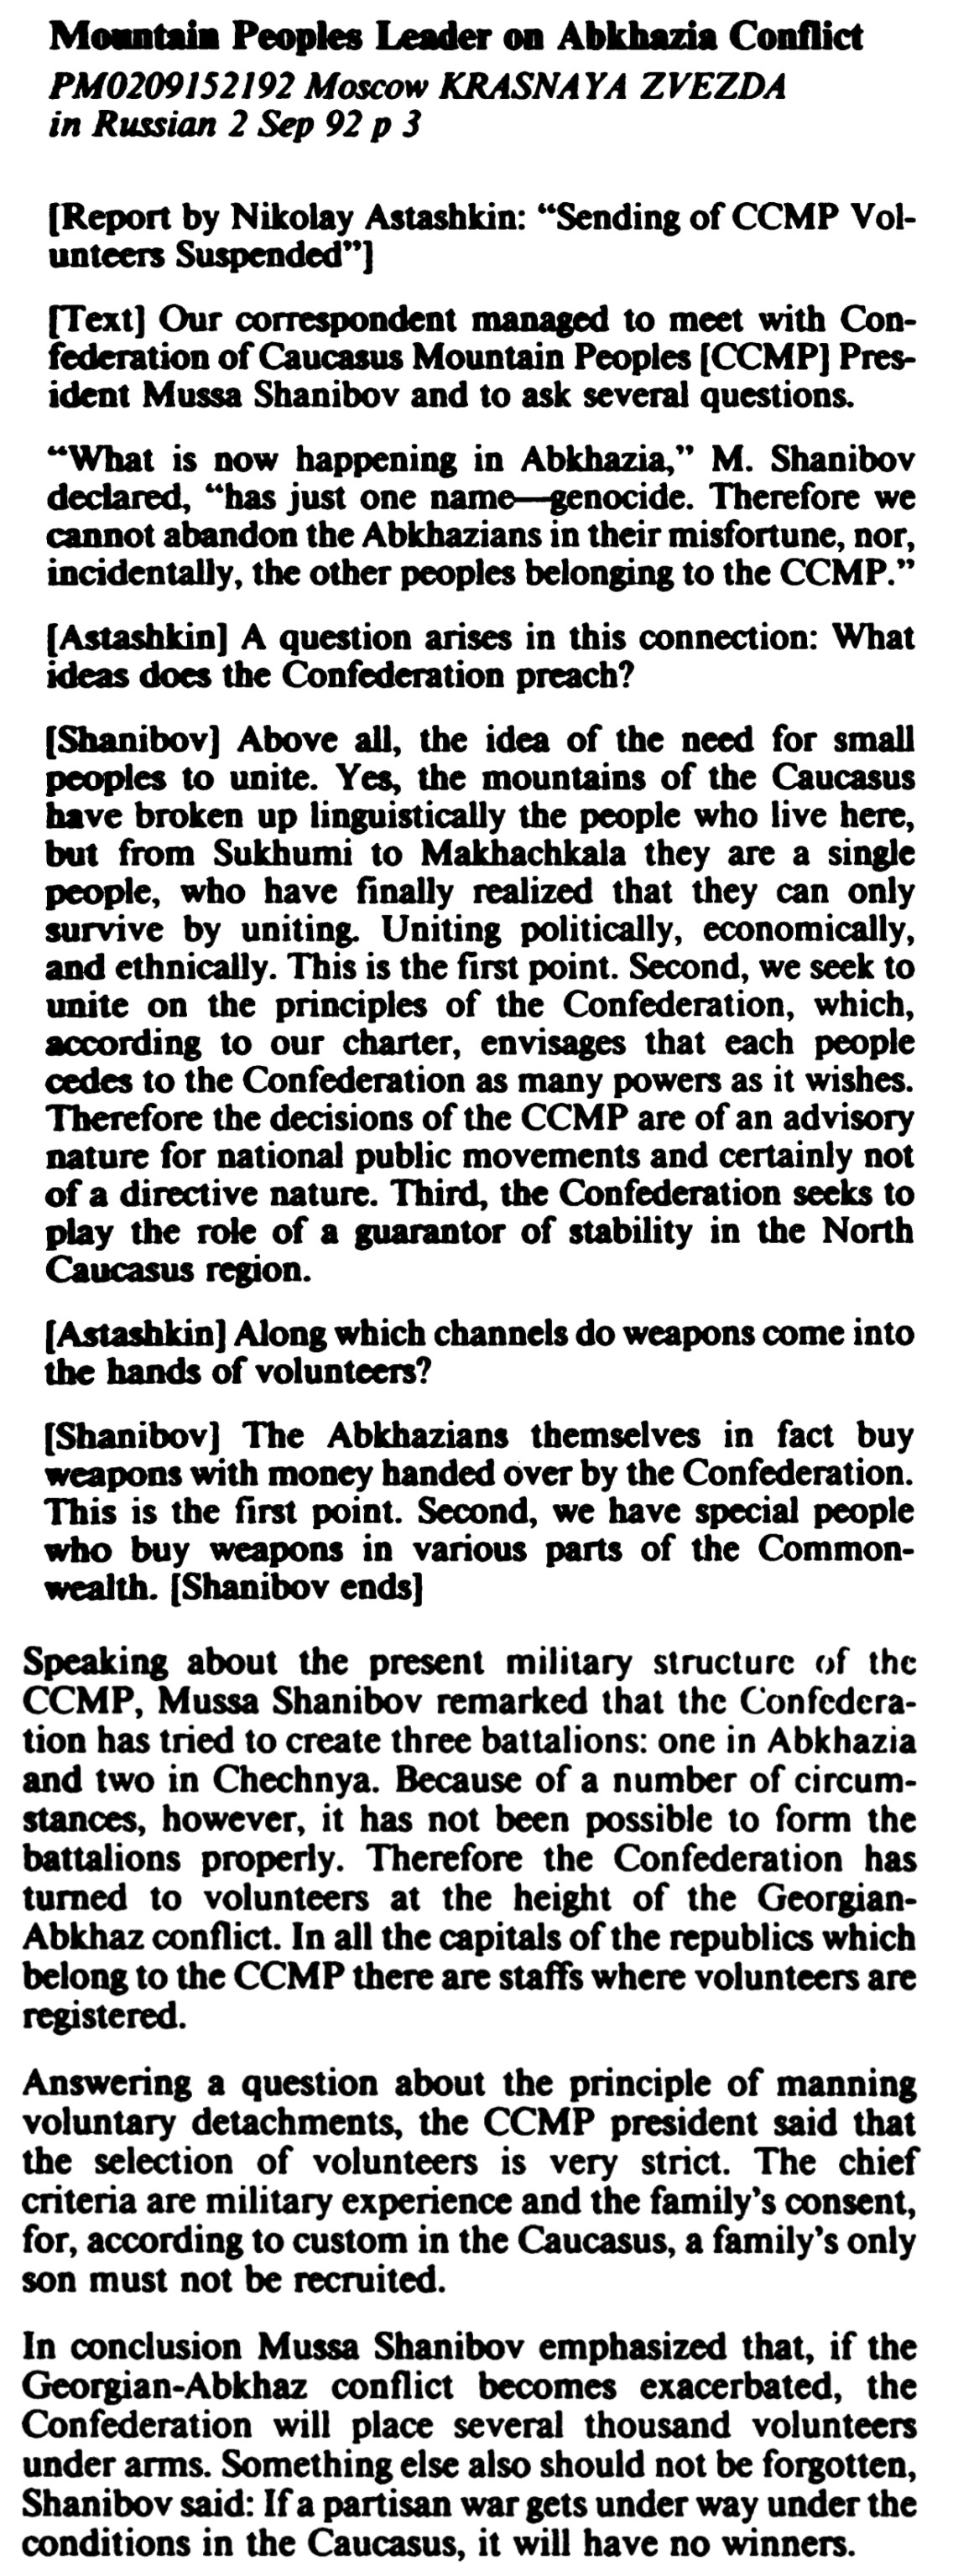 Mountain Peoples Leader on Abkhazia Conflict. KRASNAYA ZVEZDA (page 3)